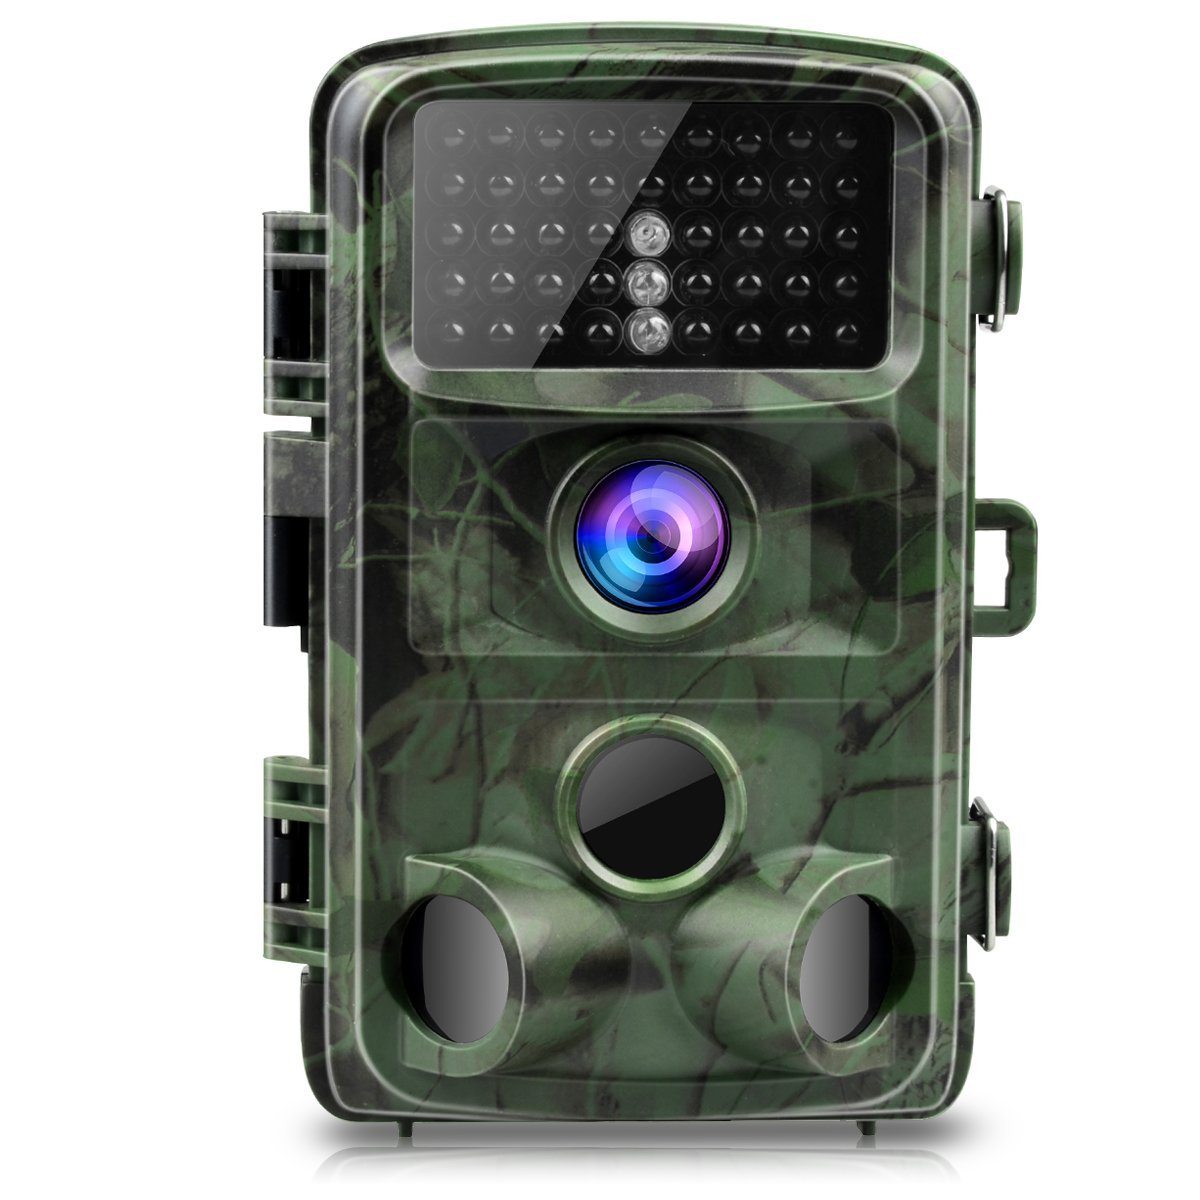 Toguard 14 MP Trail Camer